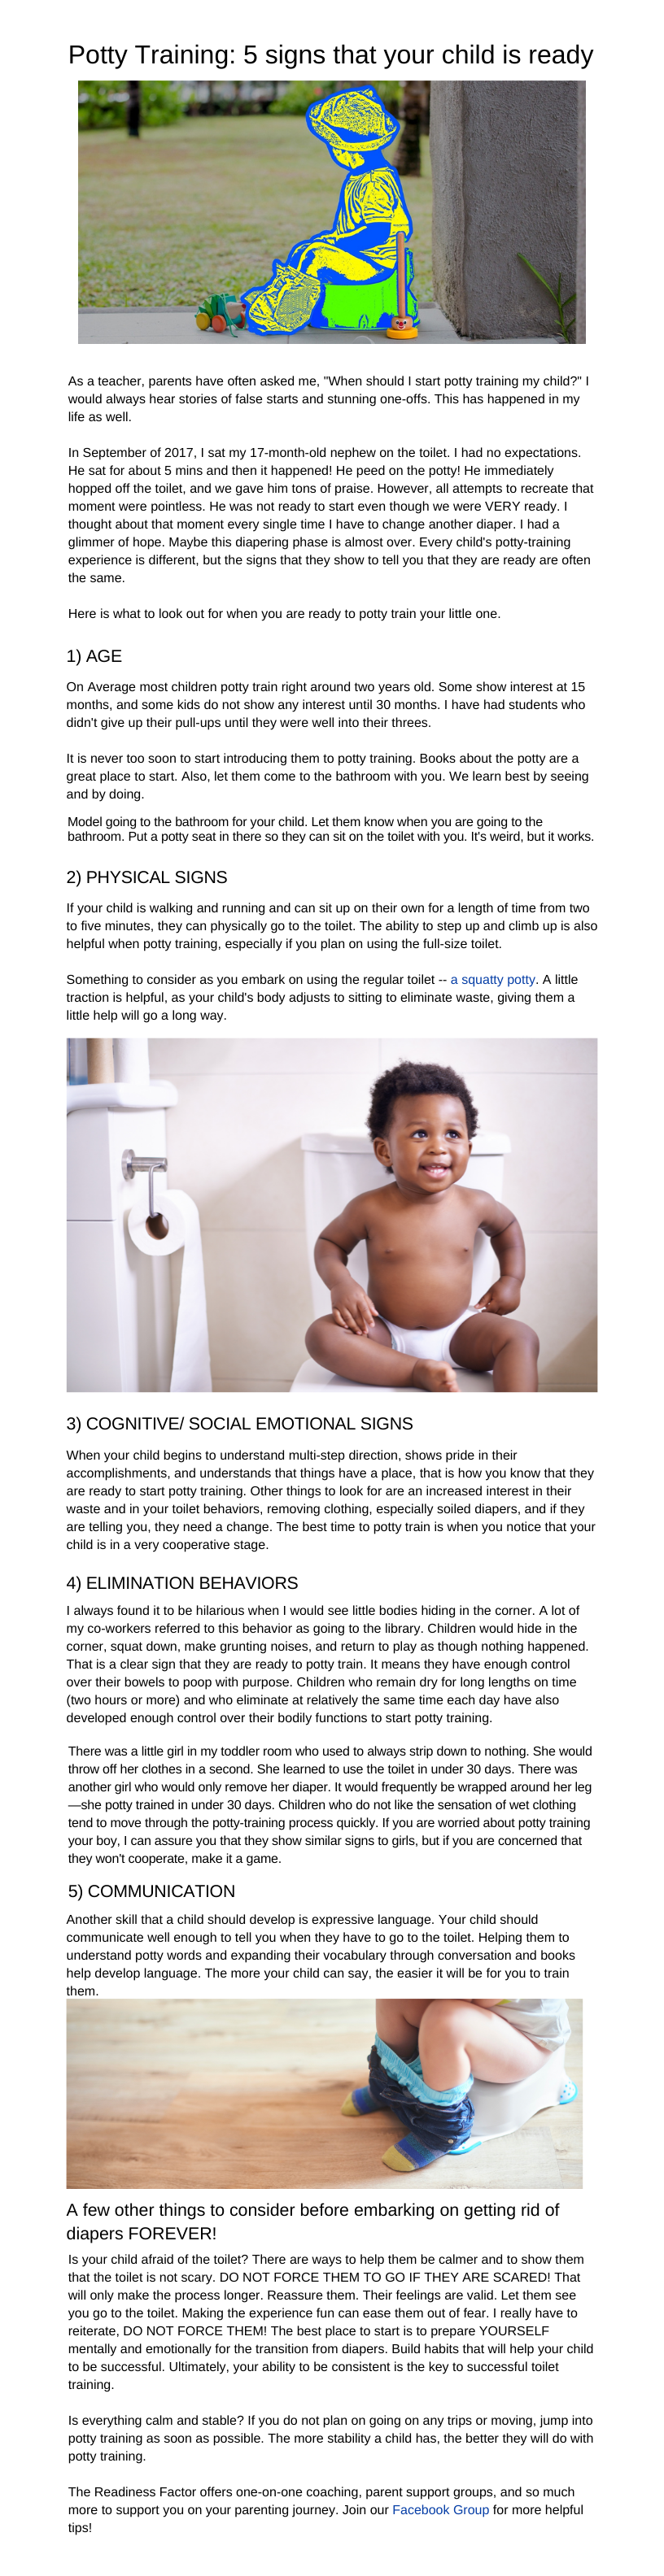 Potty Training: 5 Signs That your Child is Ready - full text